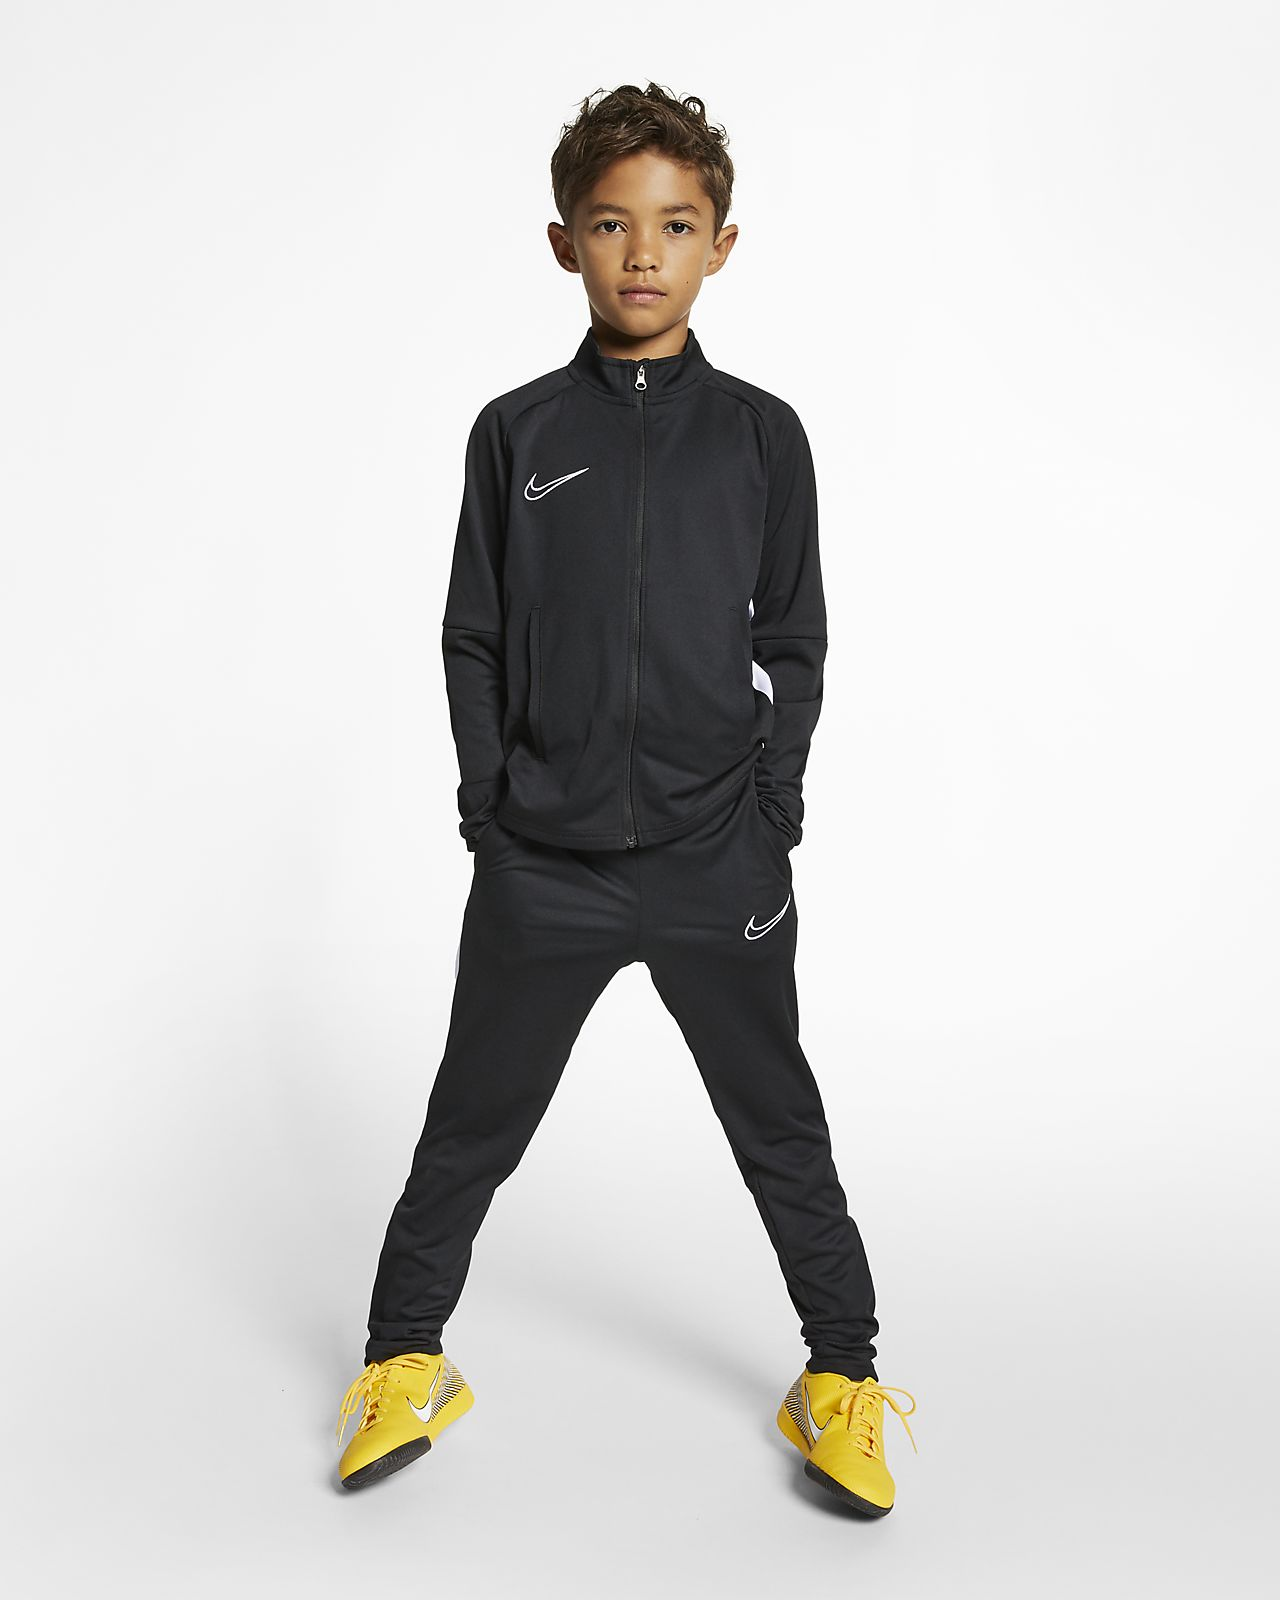 707dd6d97 Nike Dri-FIT Academy Older Kids' Football Tracksuit. Nike.com GB